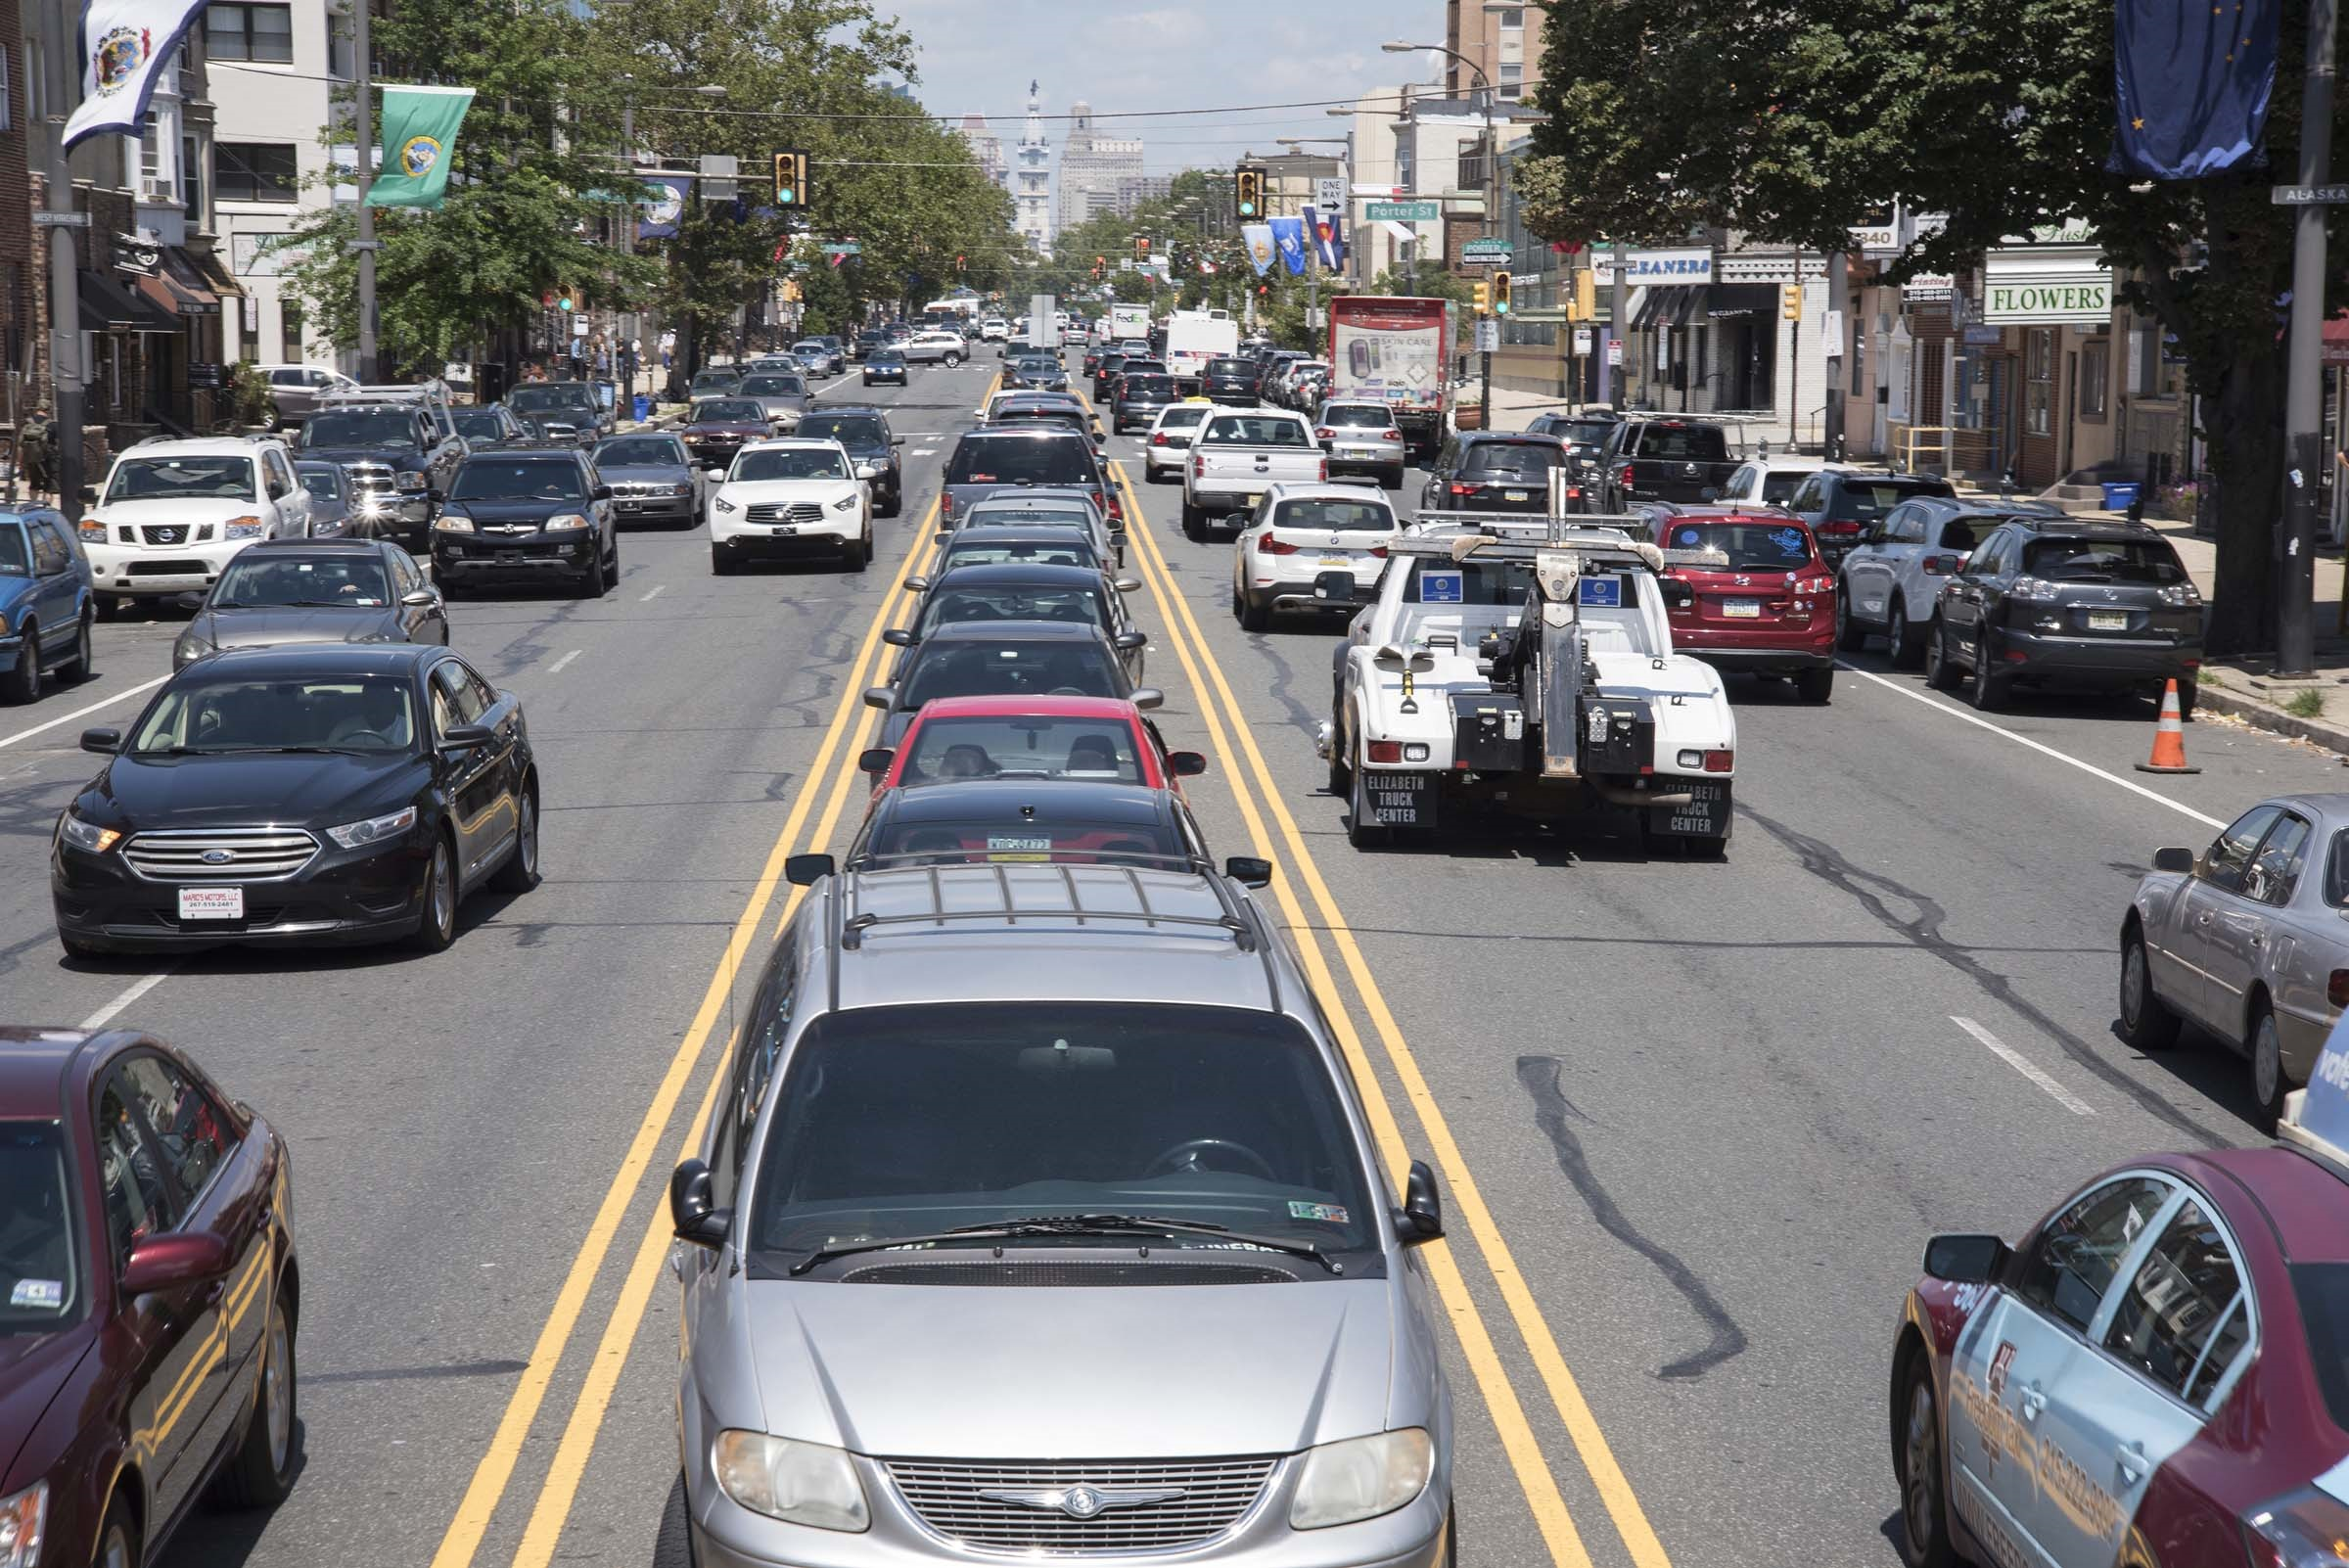 Cars parked in the median of South Broad Street between Shunk and Porter Streets.